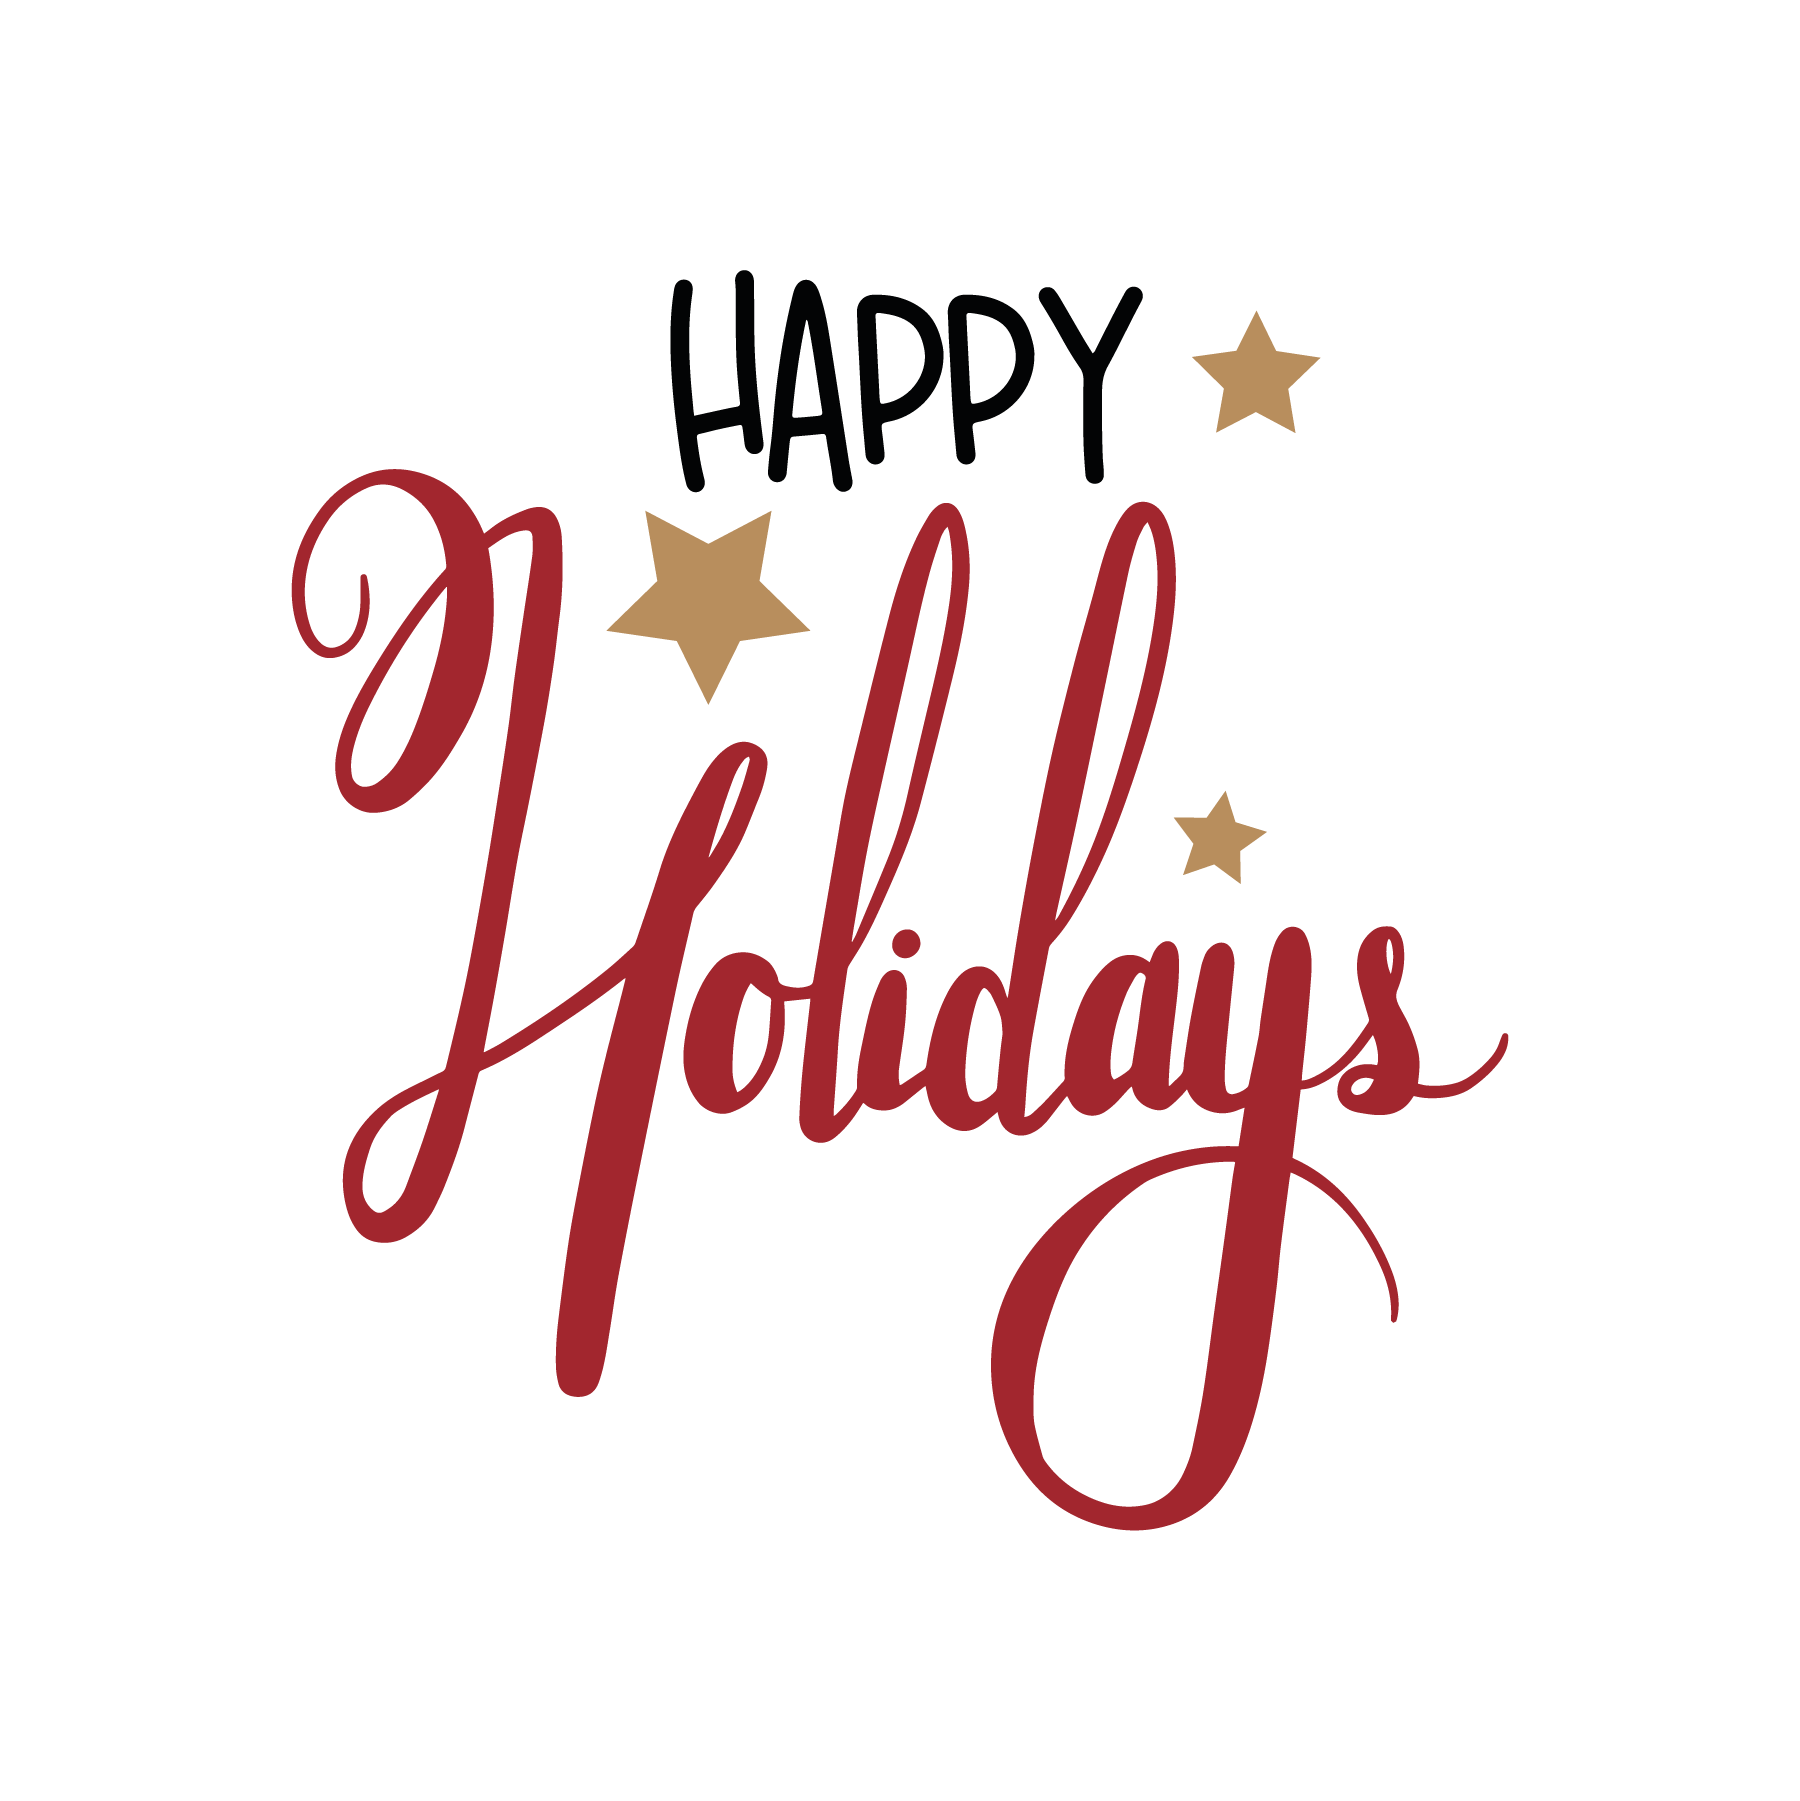 Pin By Rachel Clark On Love Svg Christmas Svg Files Happy Holidays Images Happy Holidays Sign